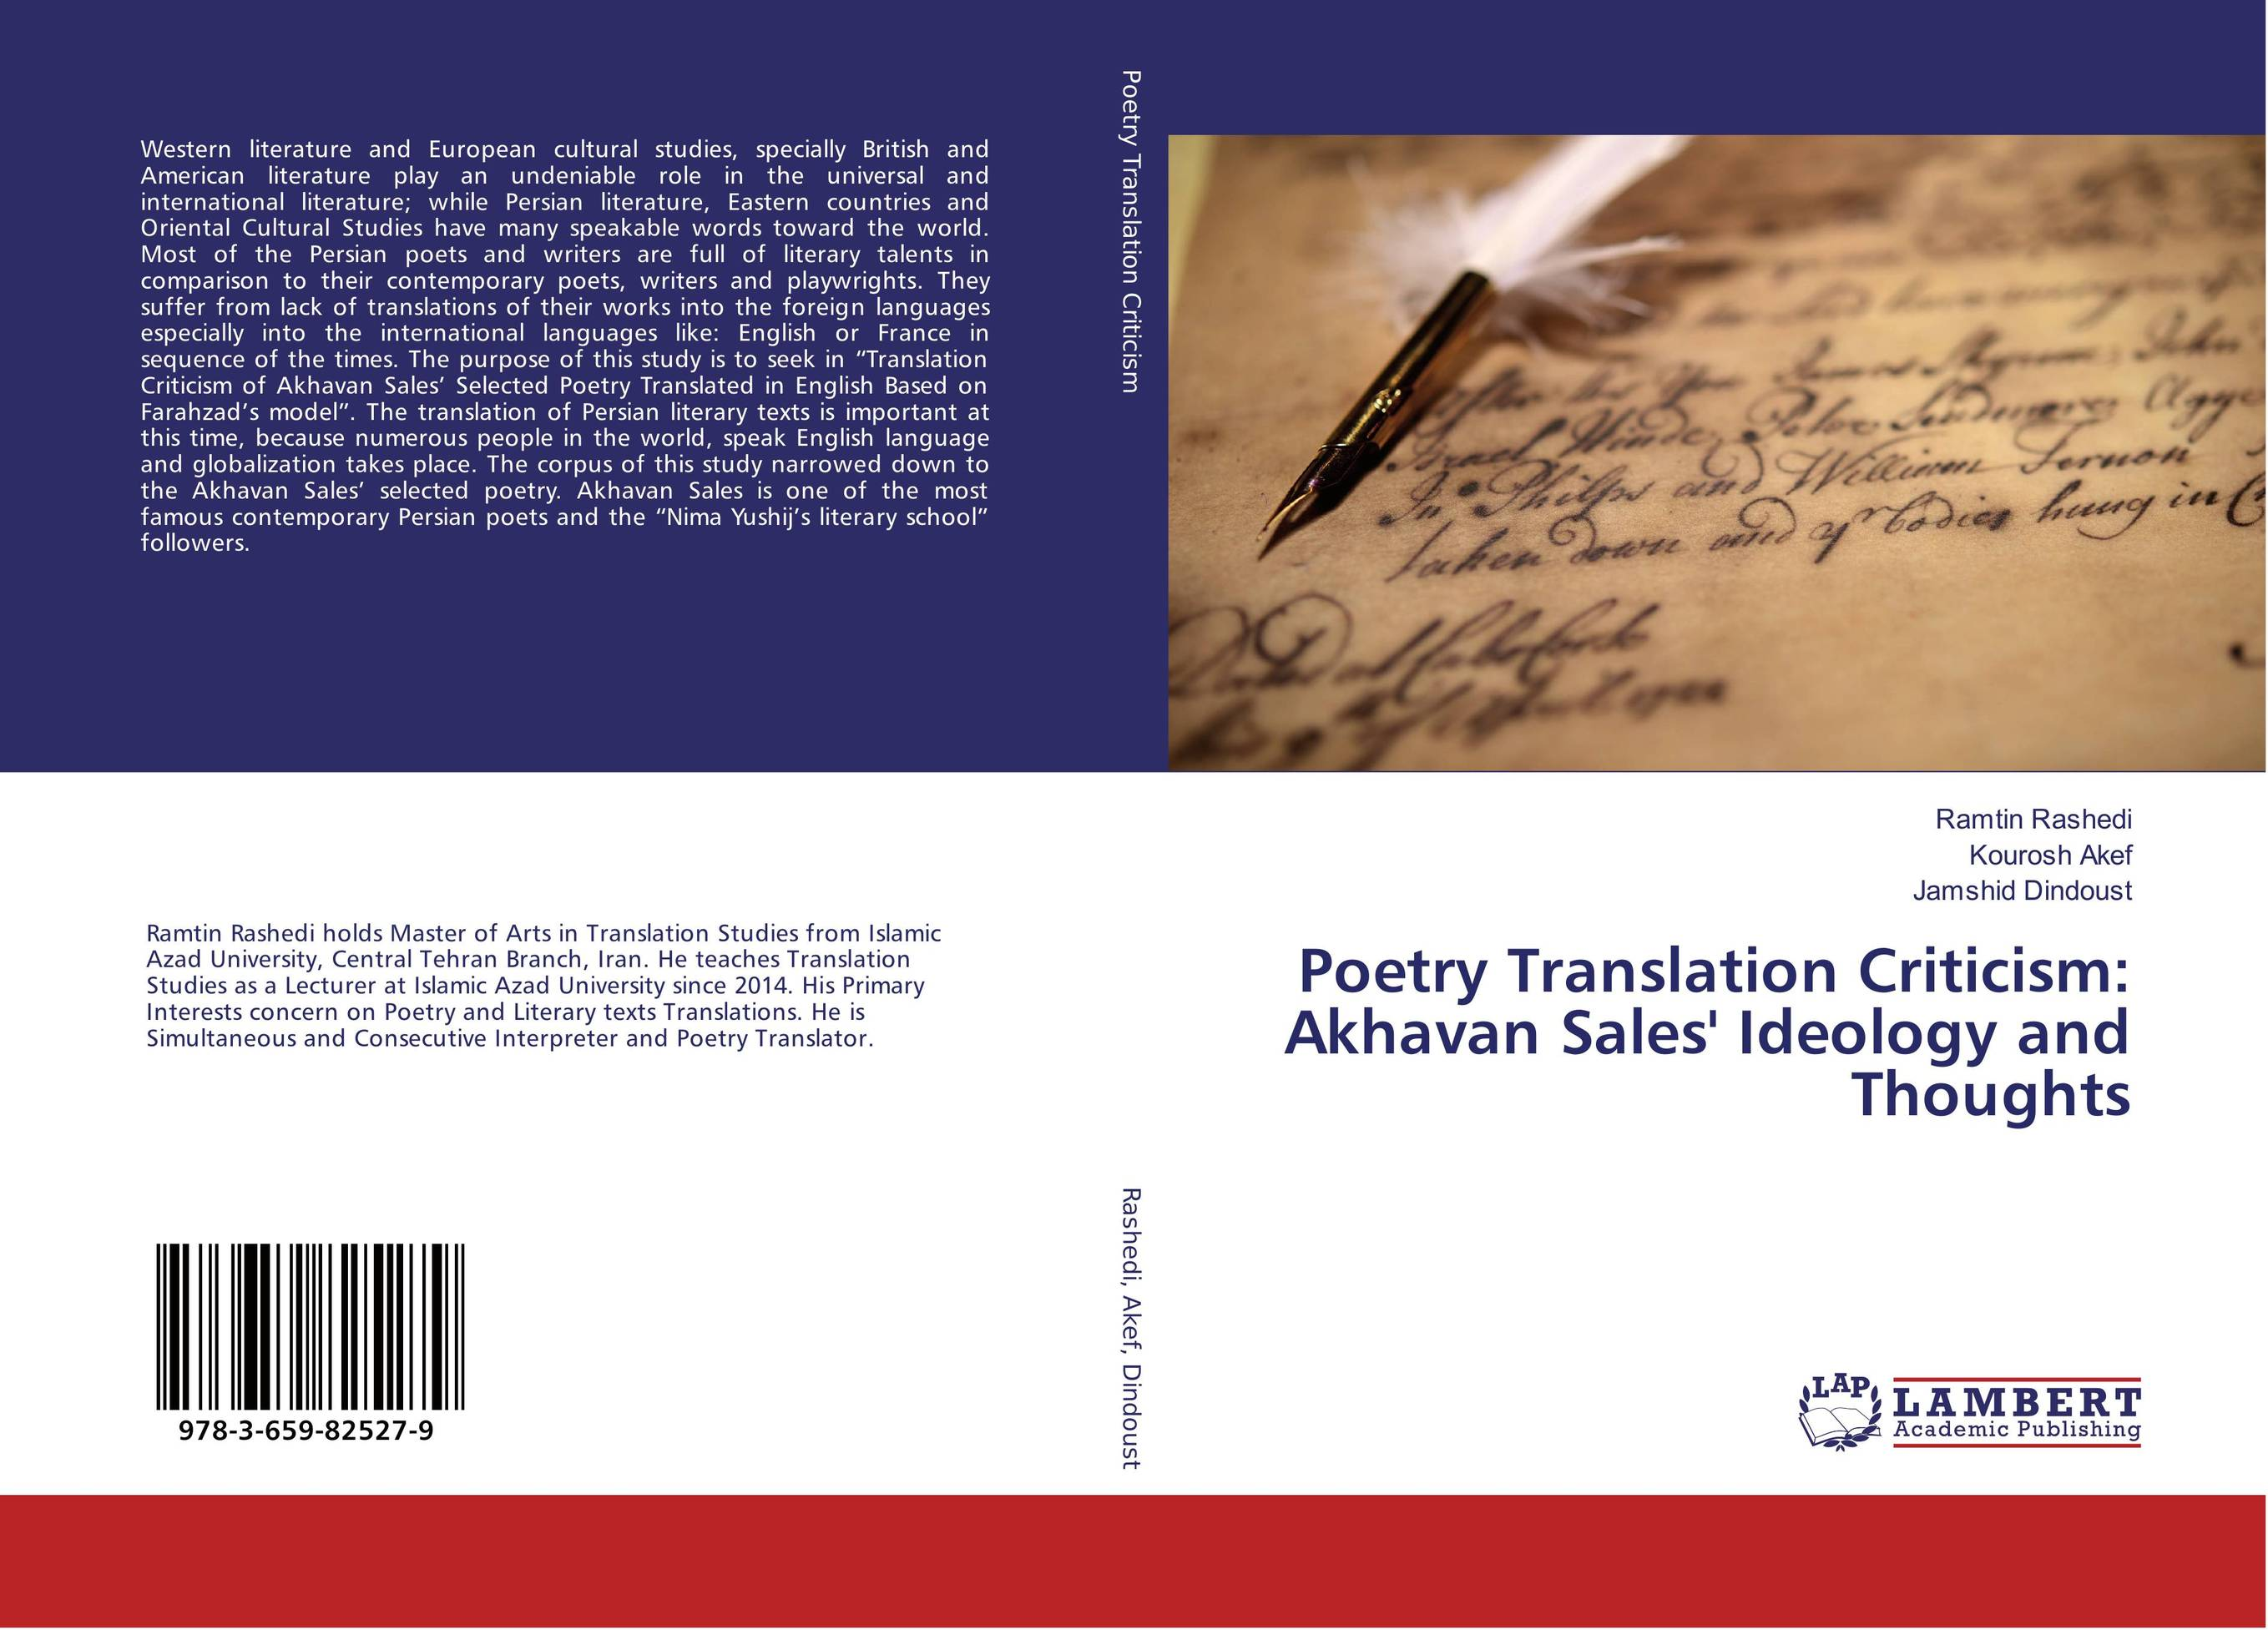 Poetry Translation Criticism: Akhavan Sales' Ideology and Thoughts shahrzad dehghan kourosh akef and sholeh kolahi the role of brain dominance in translation quality